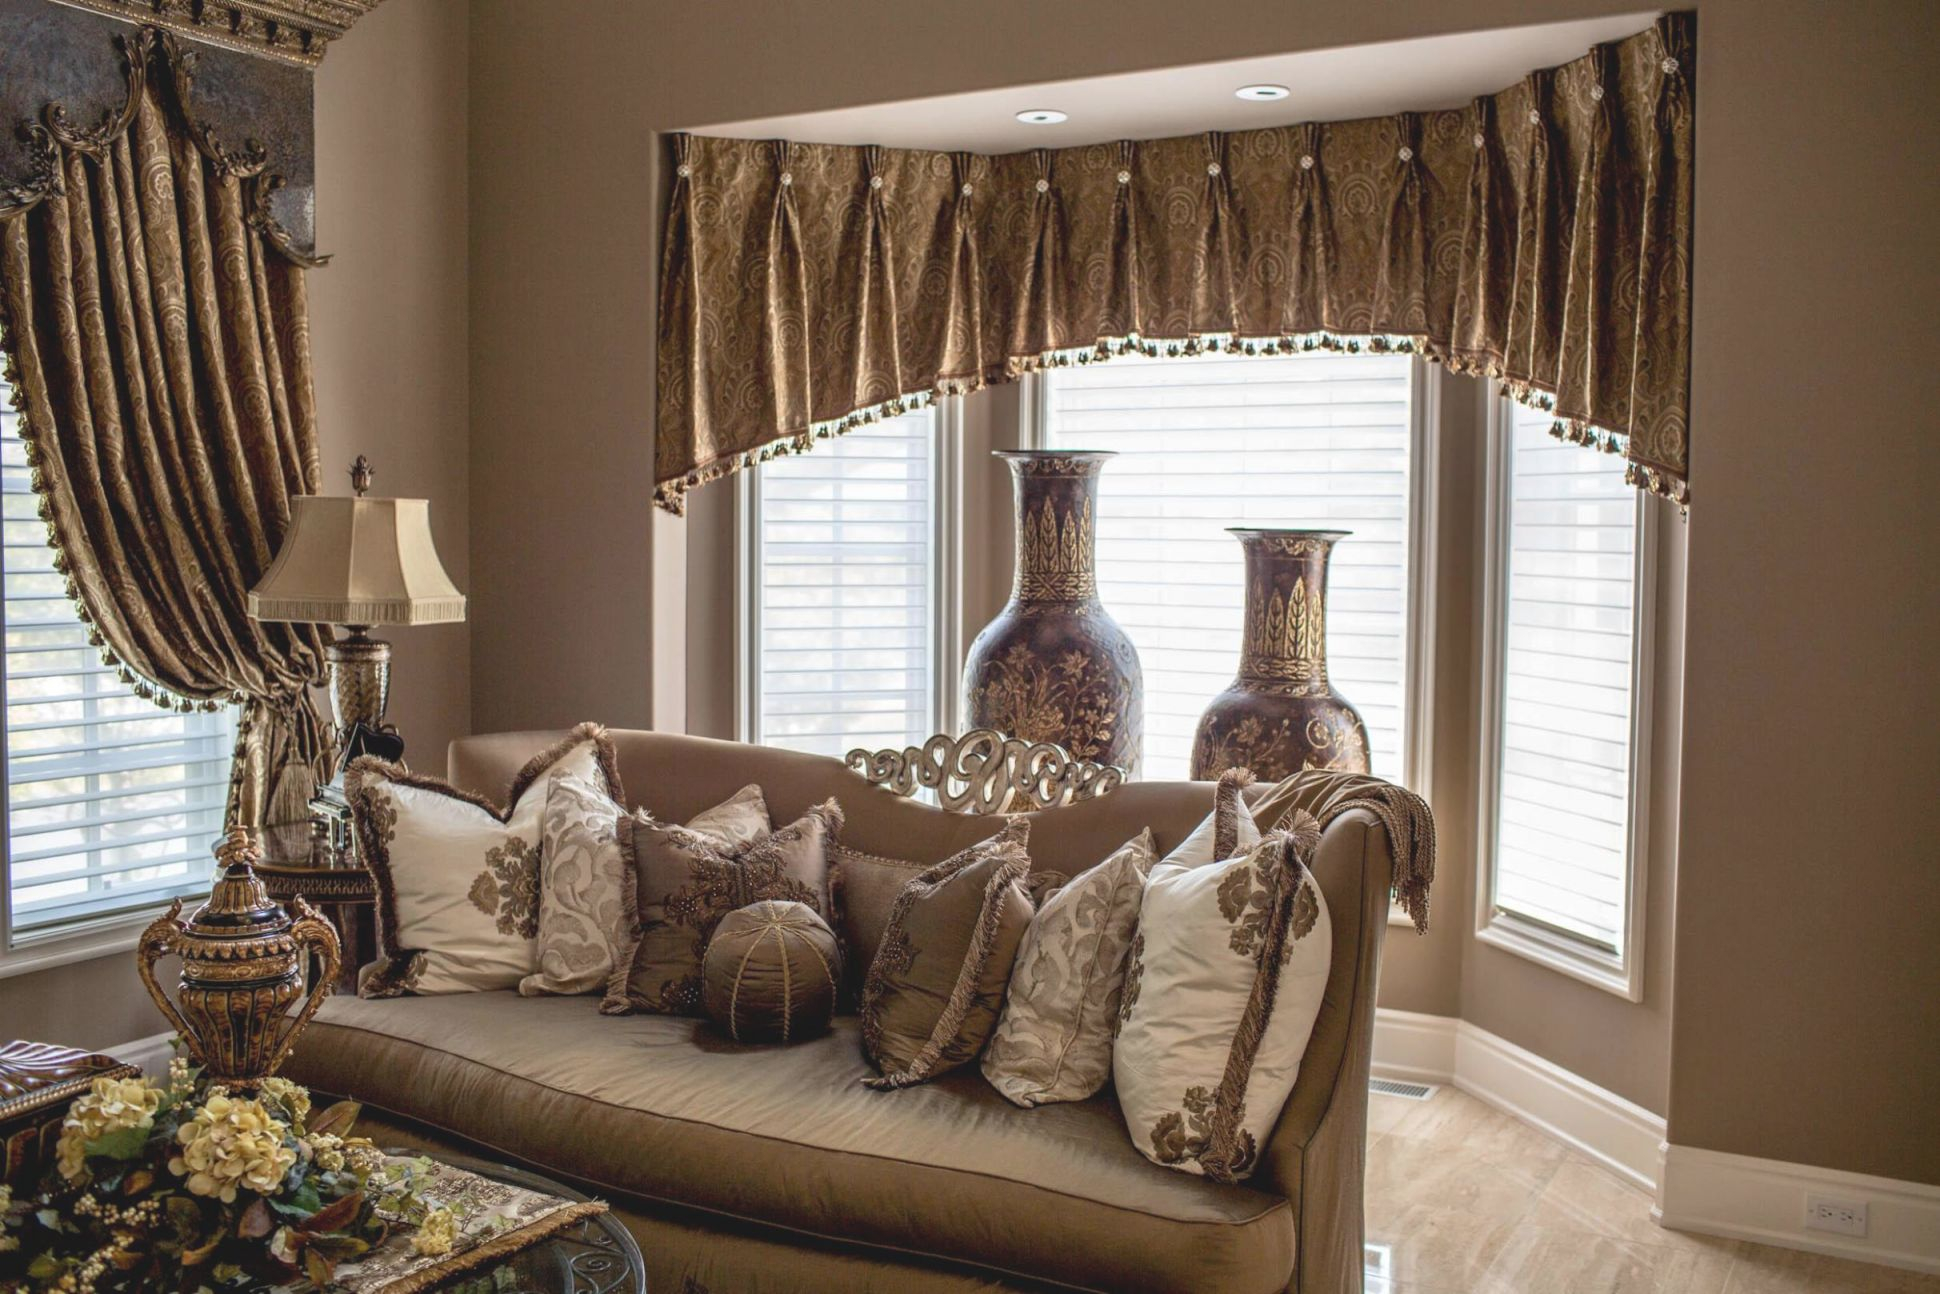 Luxury Curtains For Living Room With Brown Furniture 55 In inside Best of Curtains For Living Room With Brown Furniture